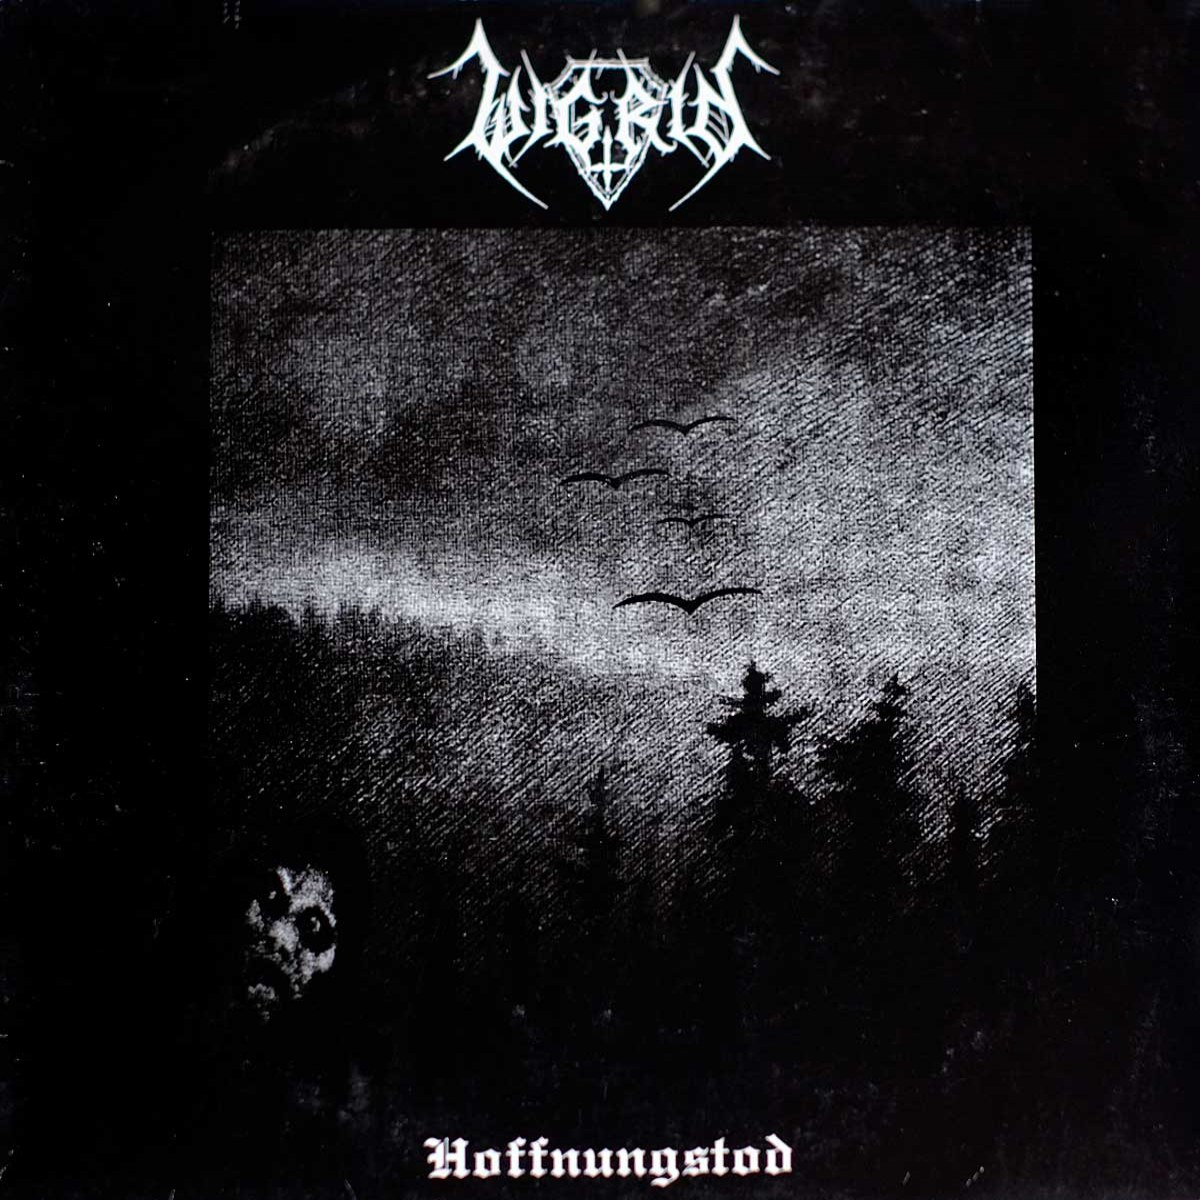 Review for Wigrid - Hoffnungstod